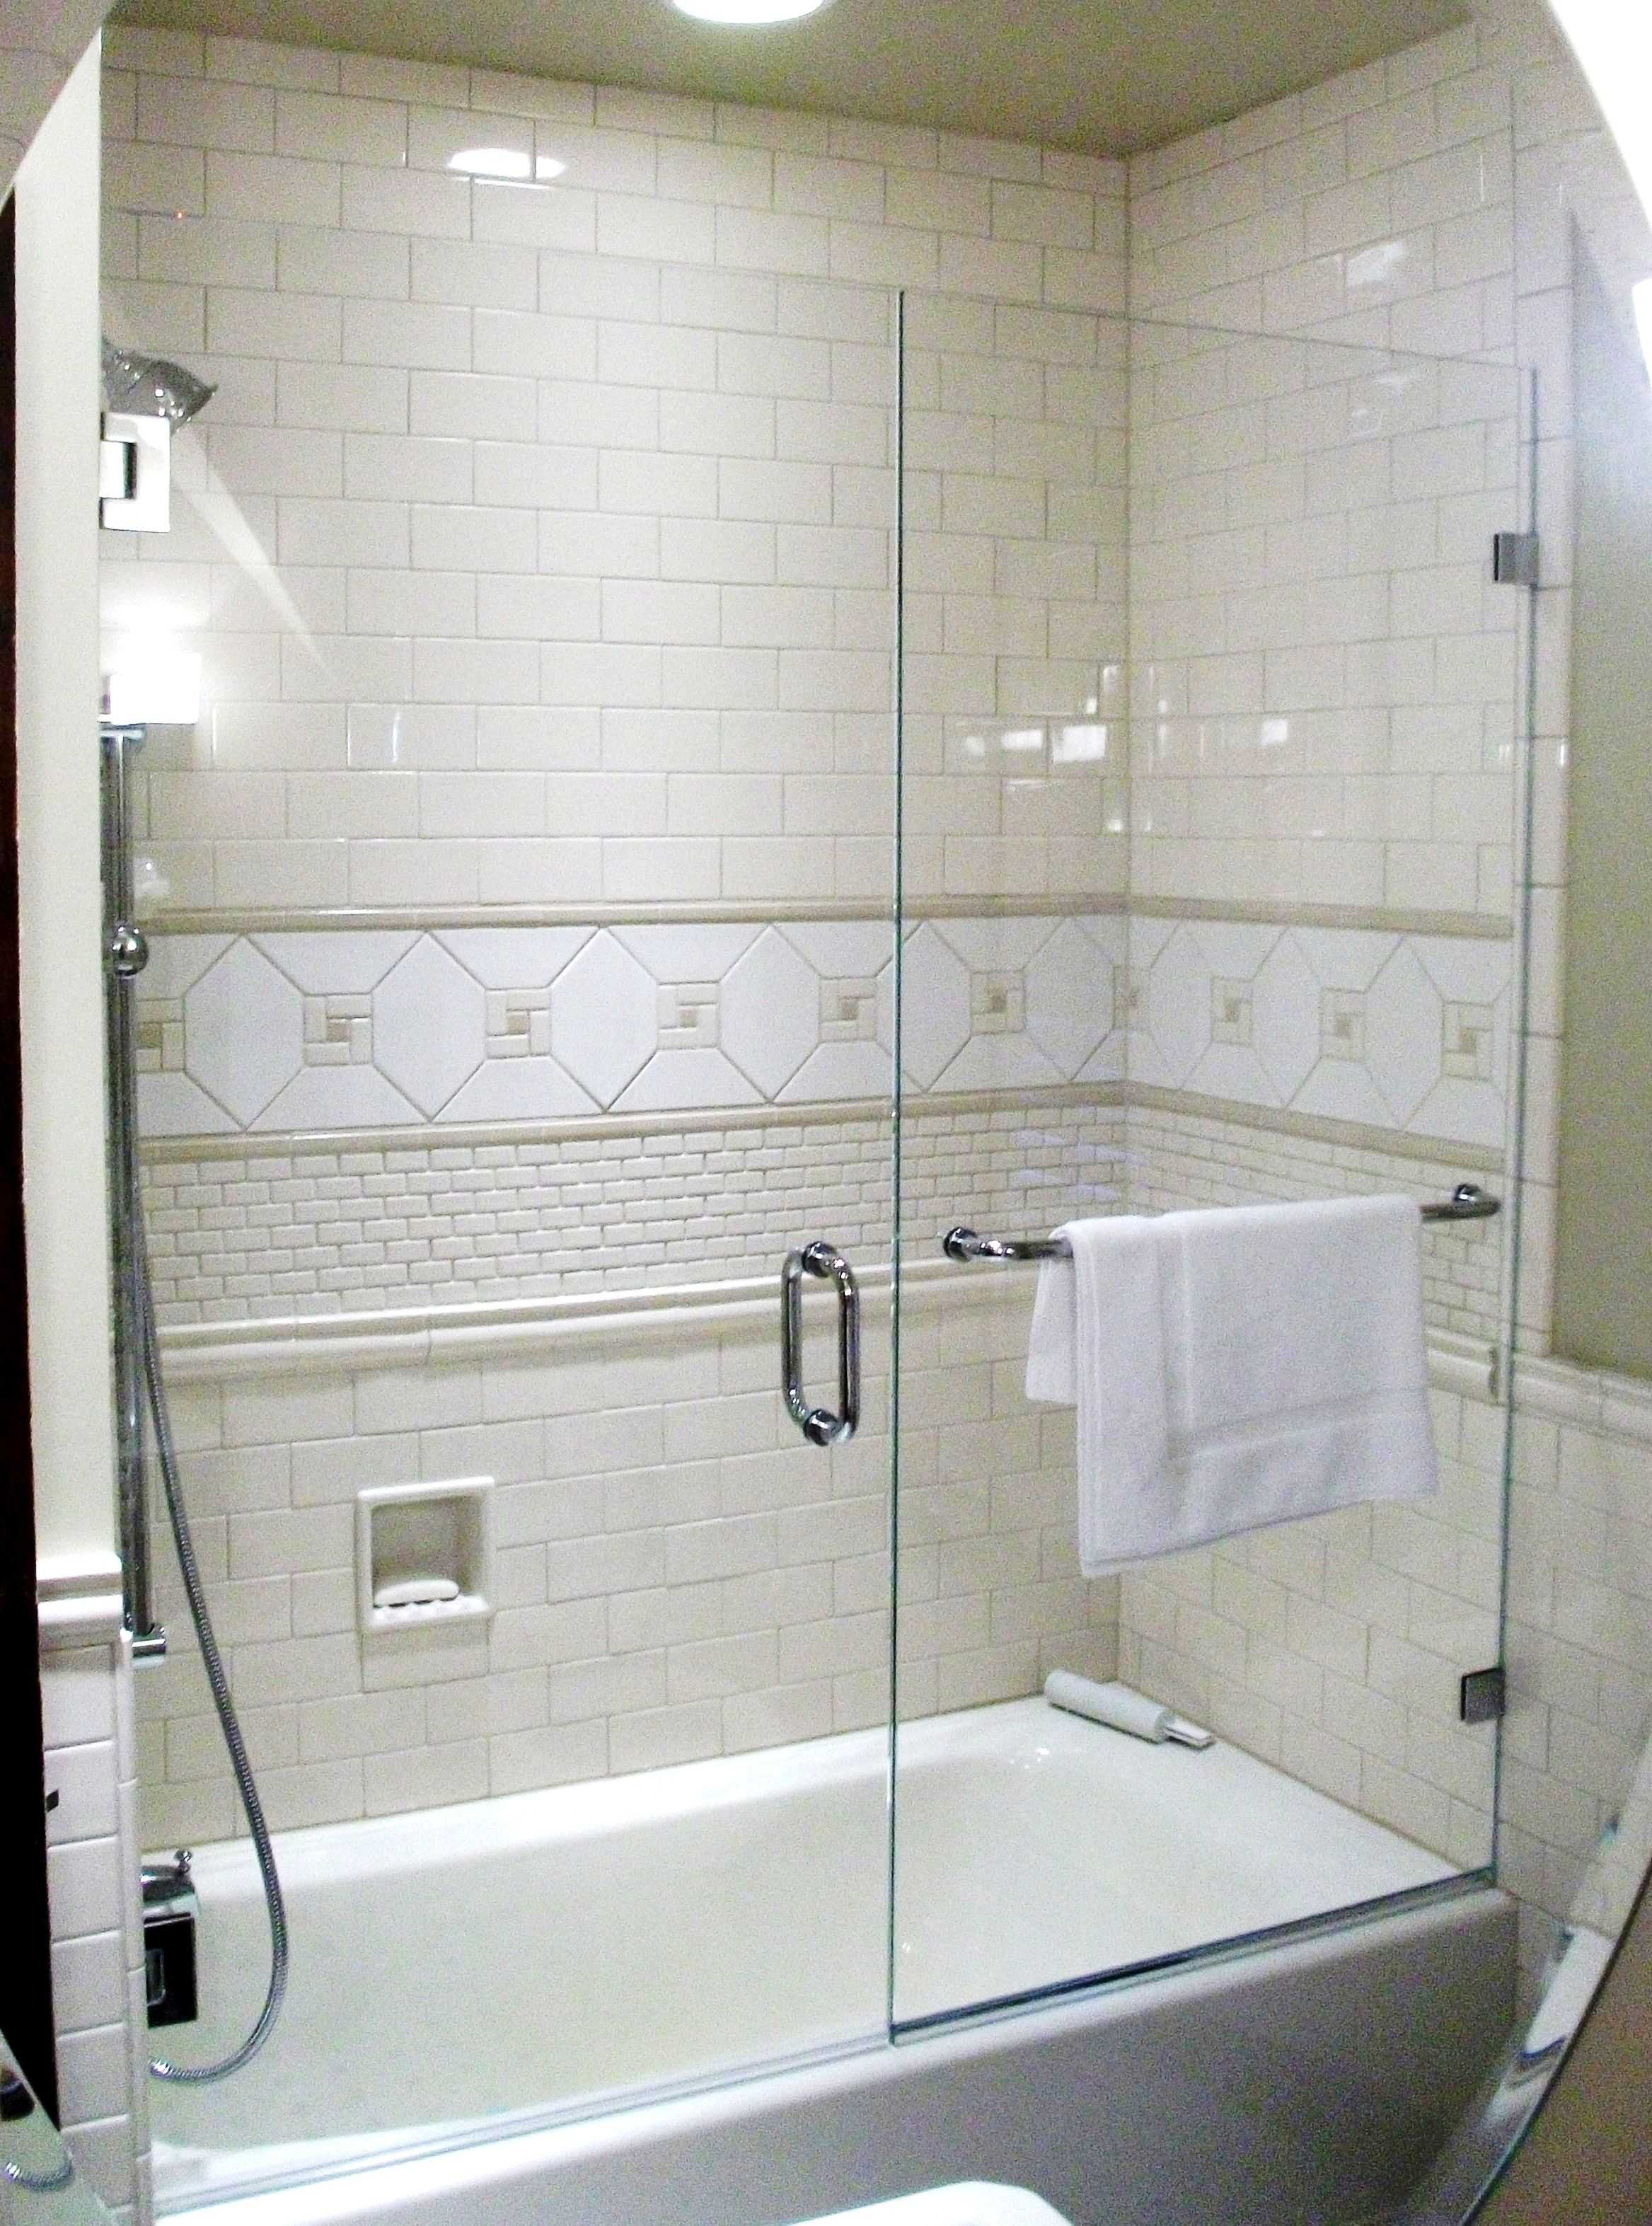 Frameless Shower Enclosure: Door + Panel on Tub with Wall-Mount ...